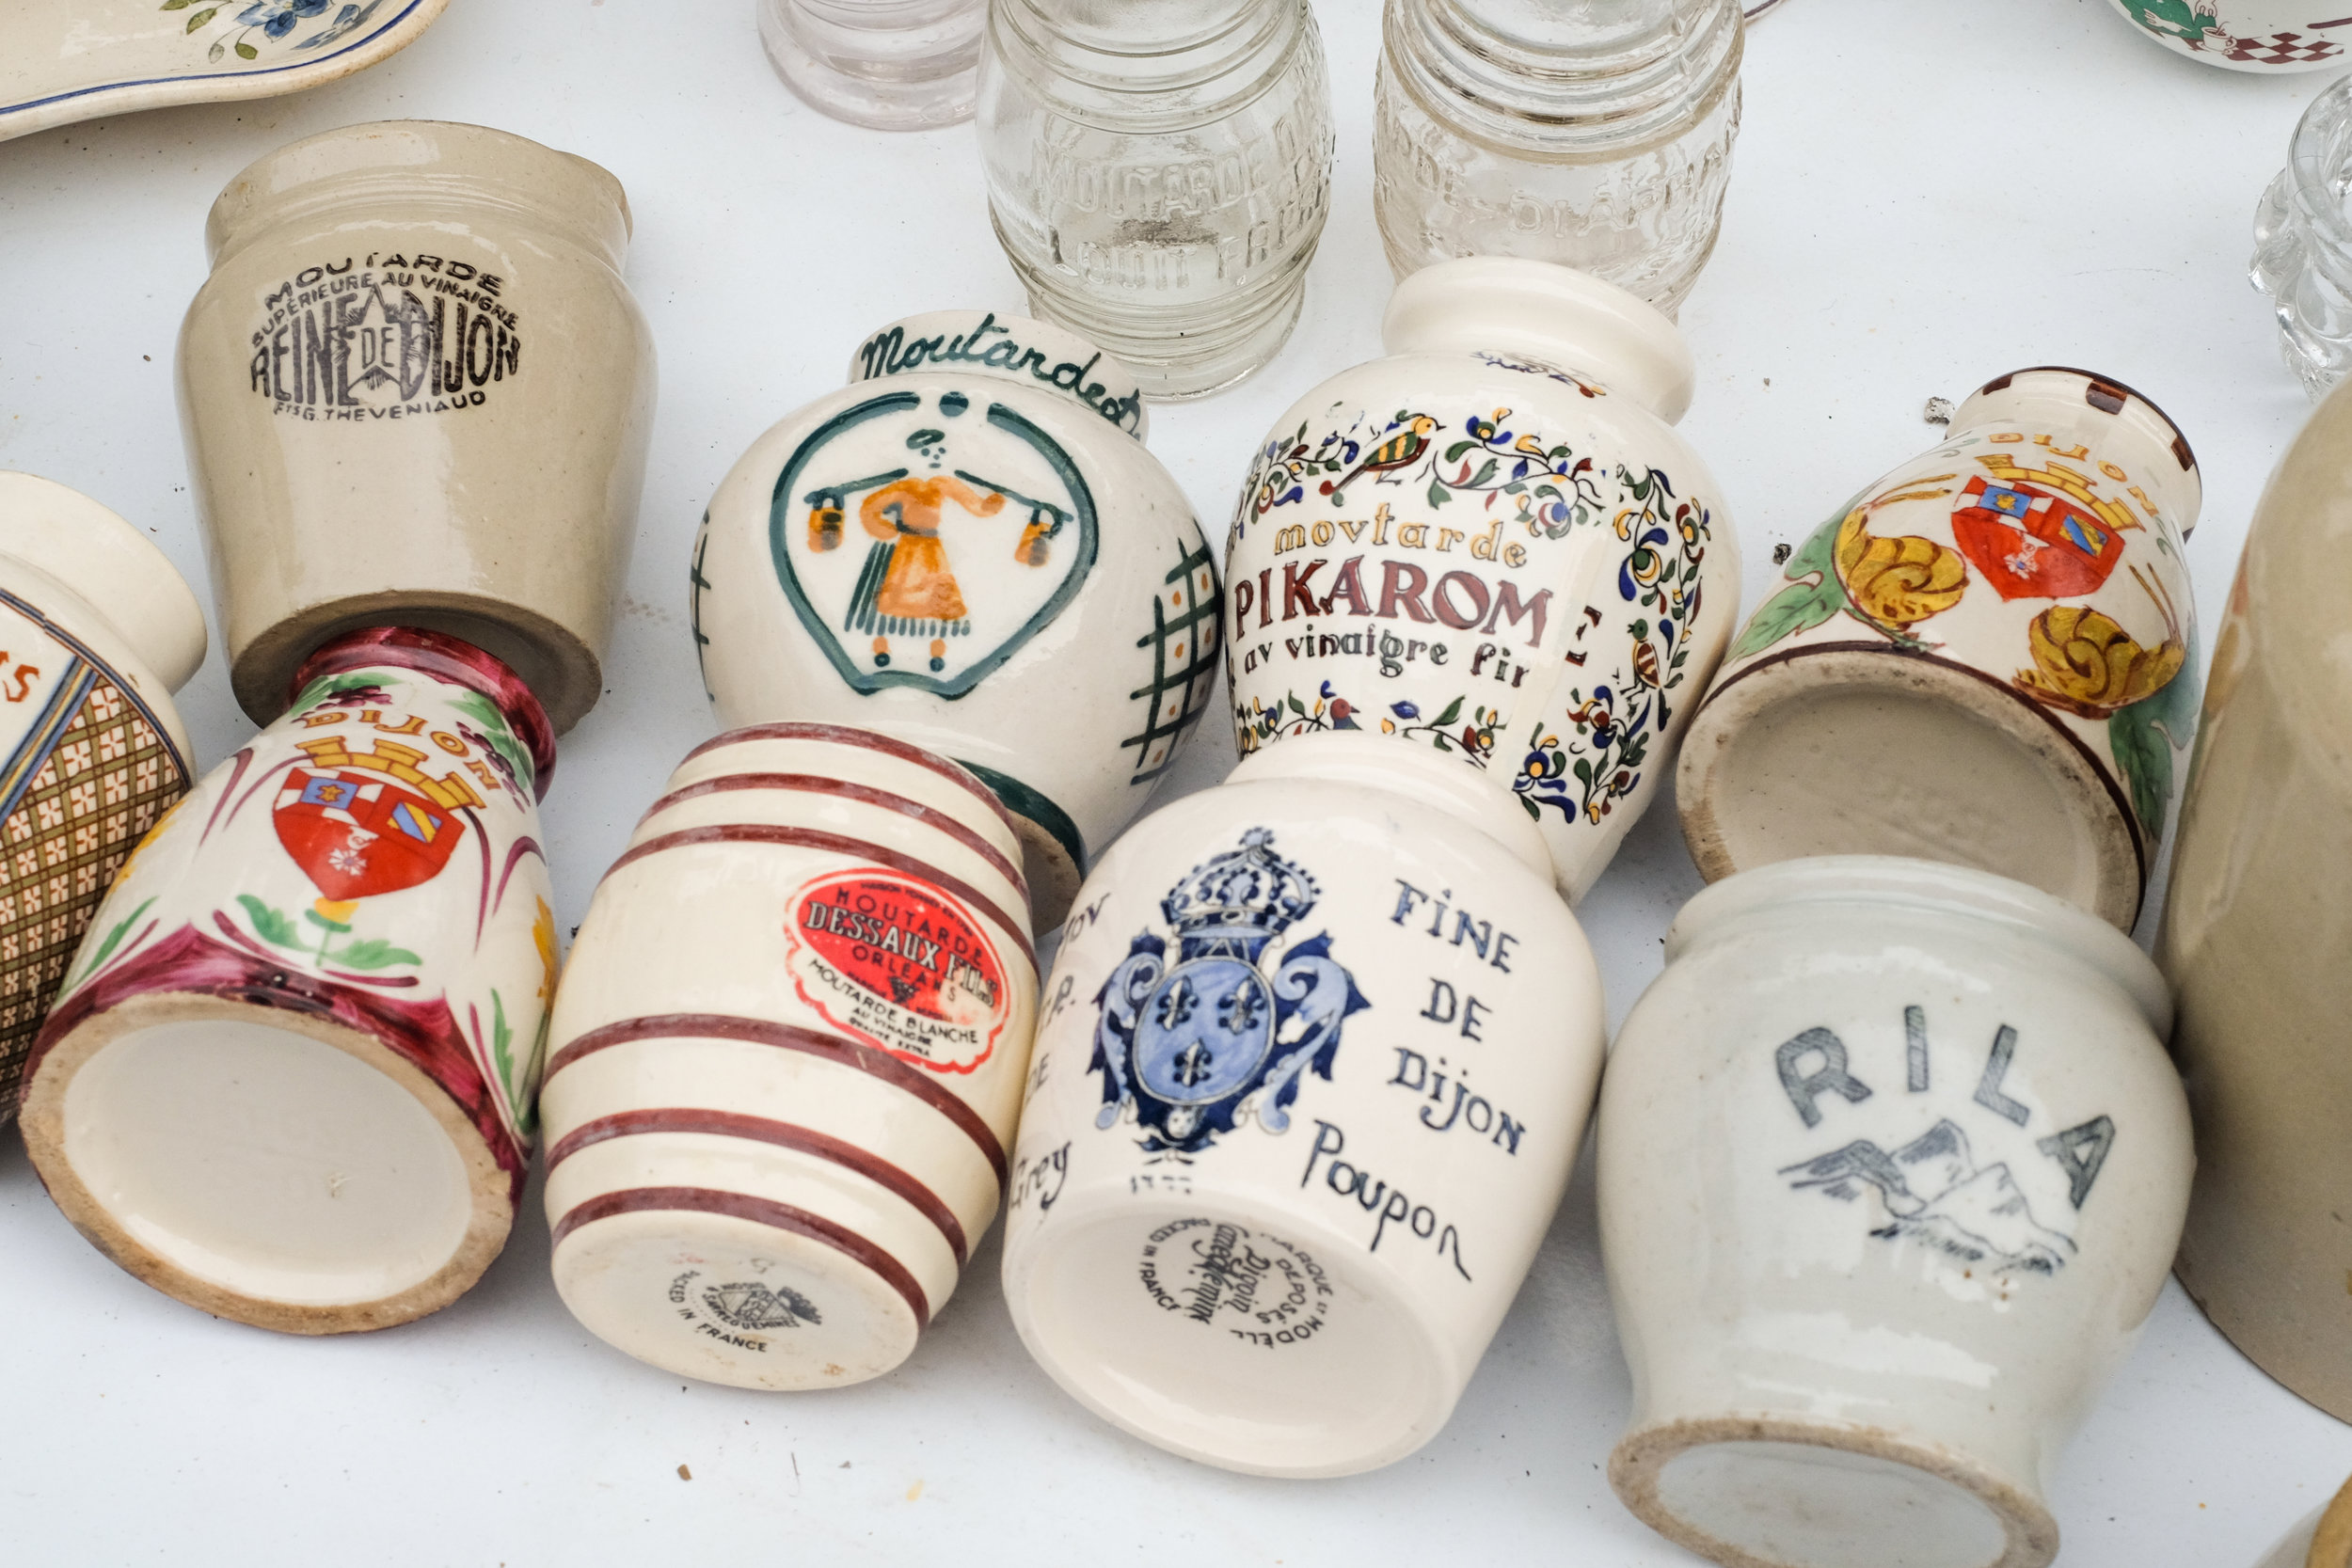 Mustard jars with pretty patterns